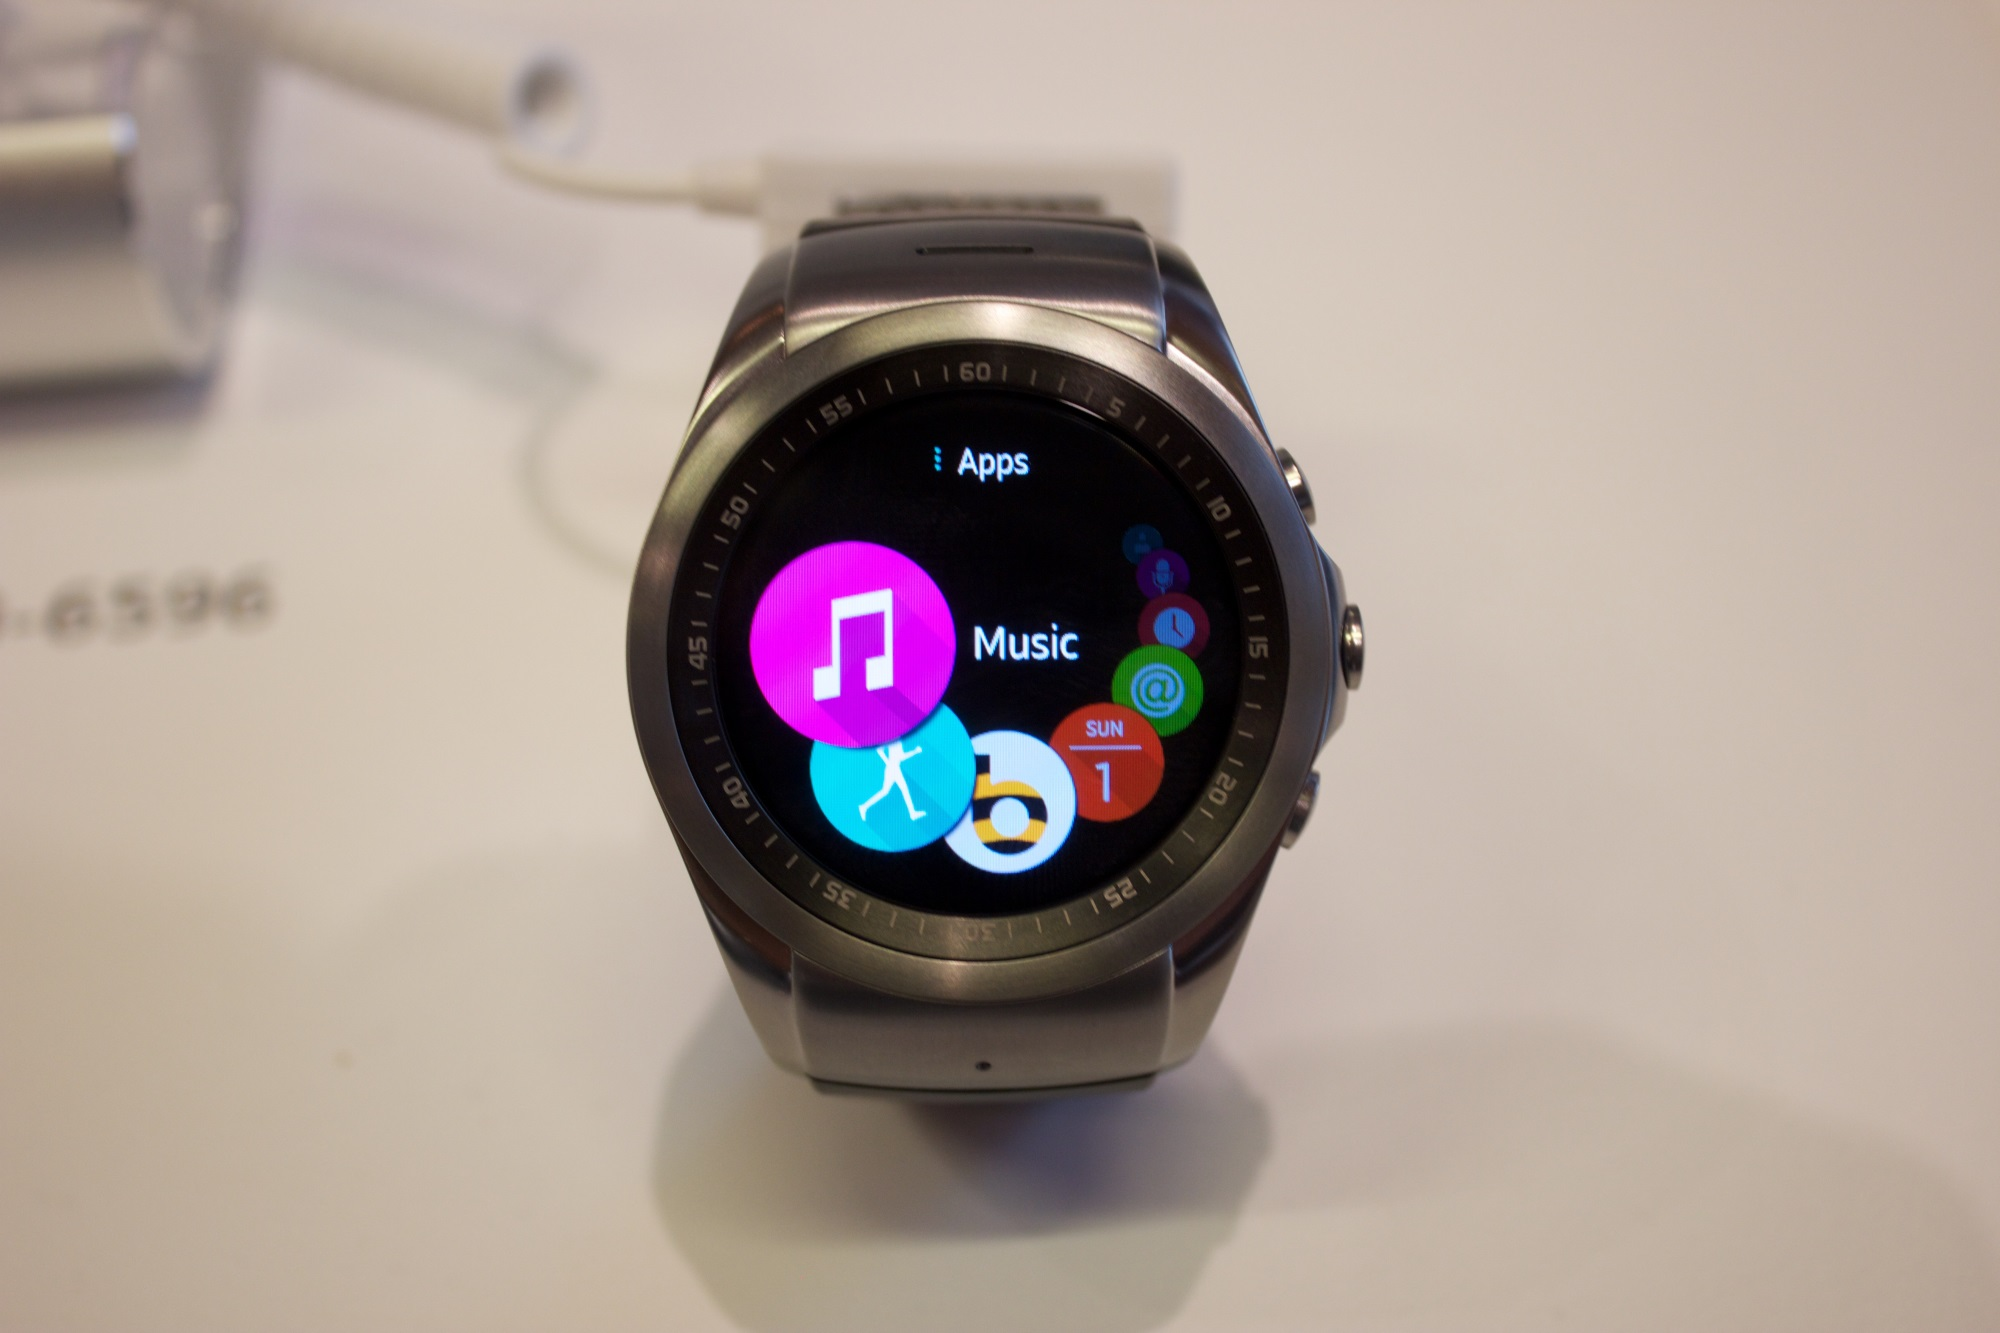 LG Watch Urbane - hands-on (5)